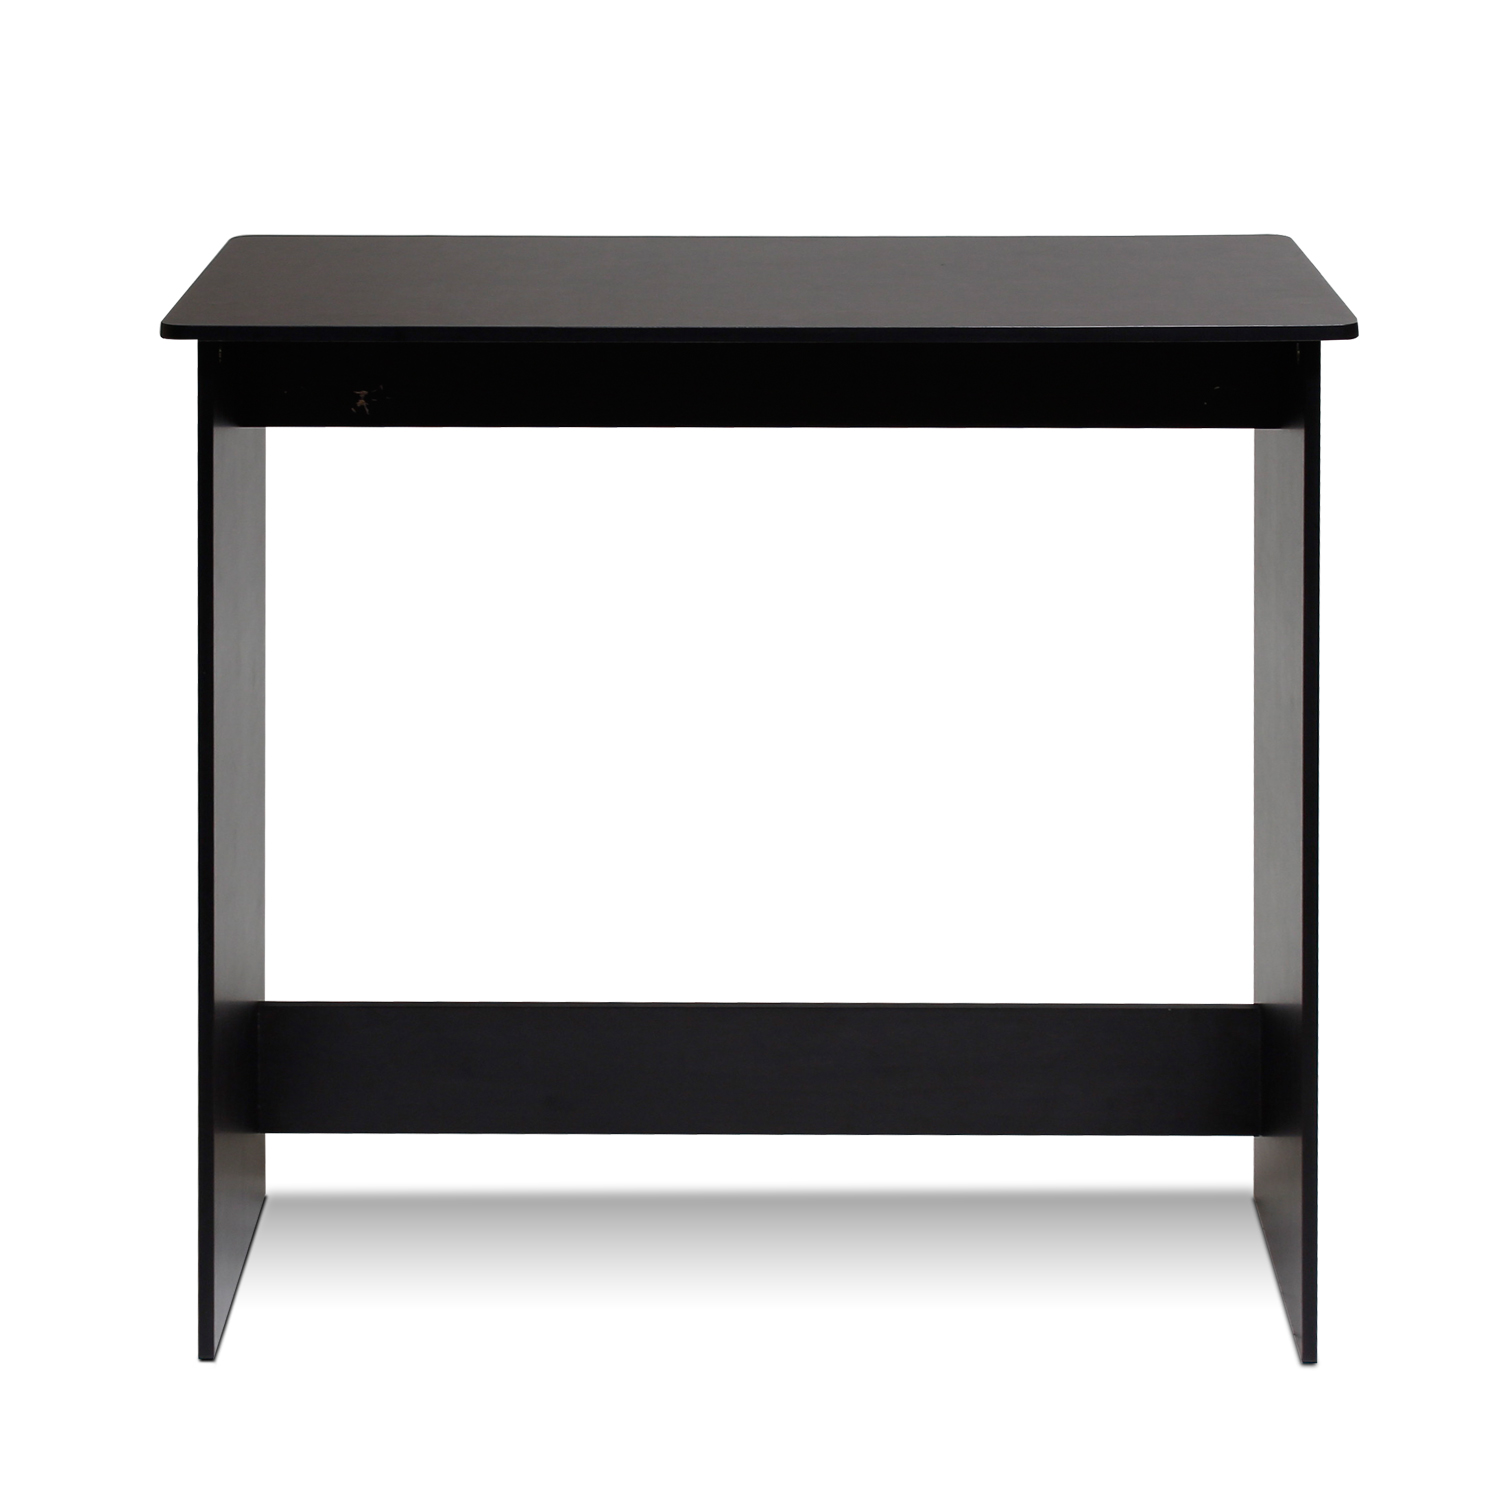 Walmart: Furinno Simplistic Study Table, Multiple Colors For $43